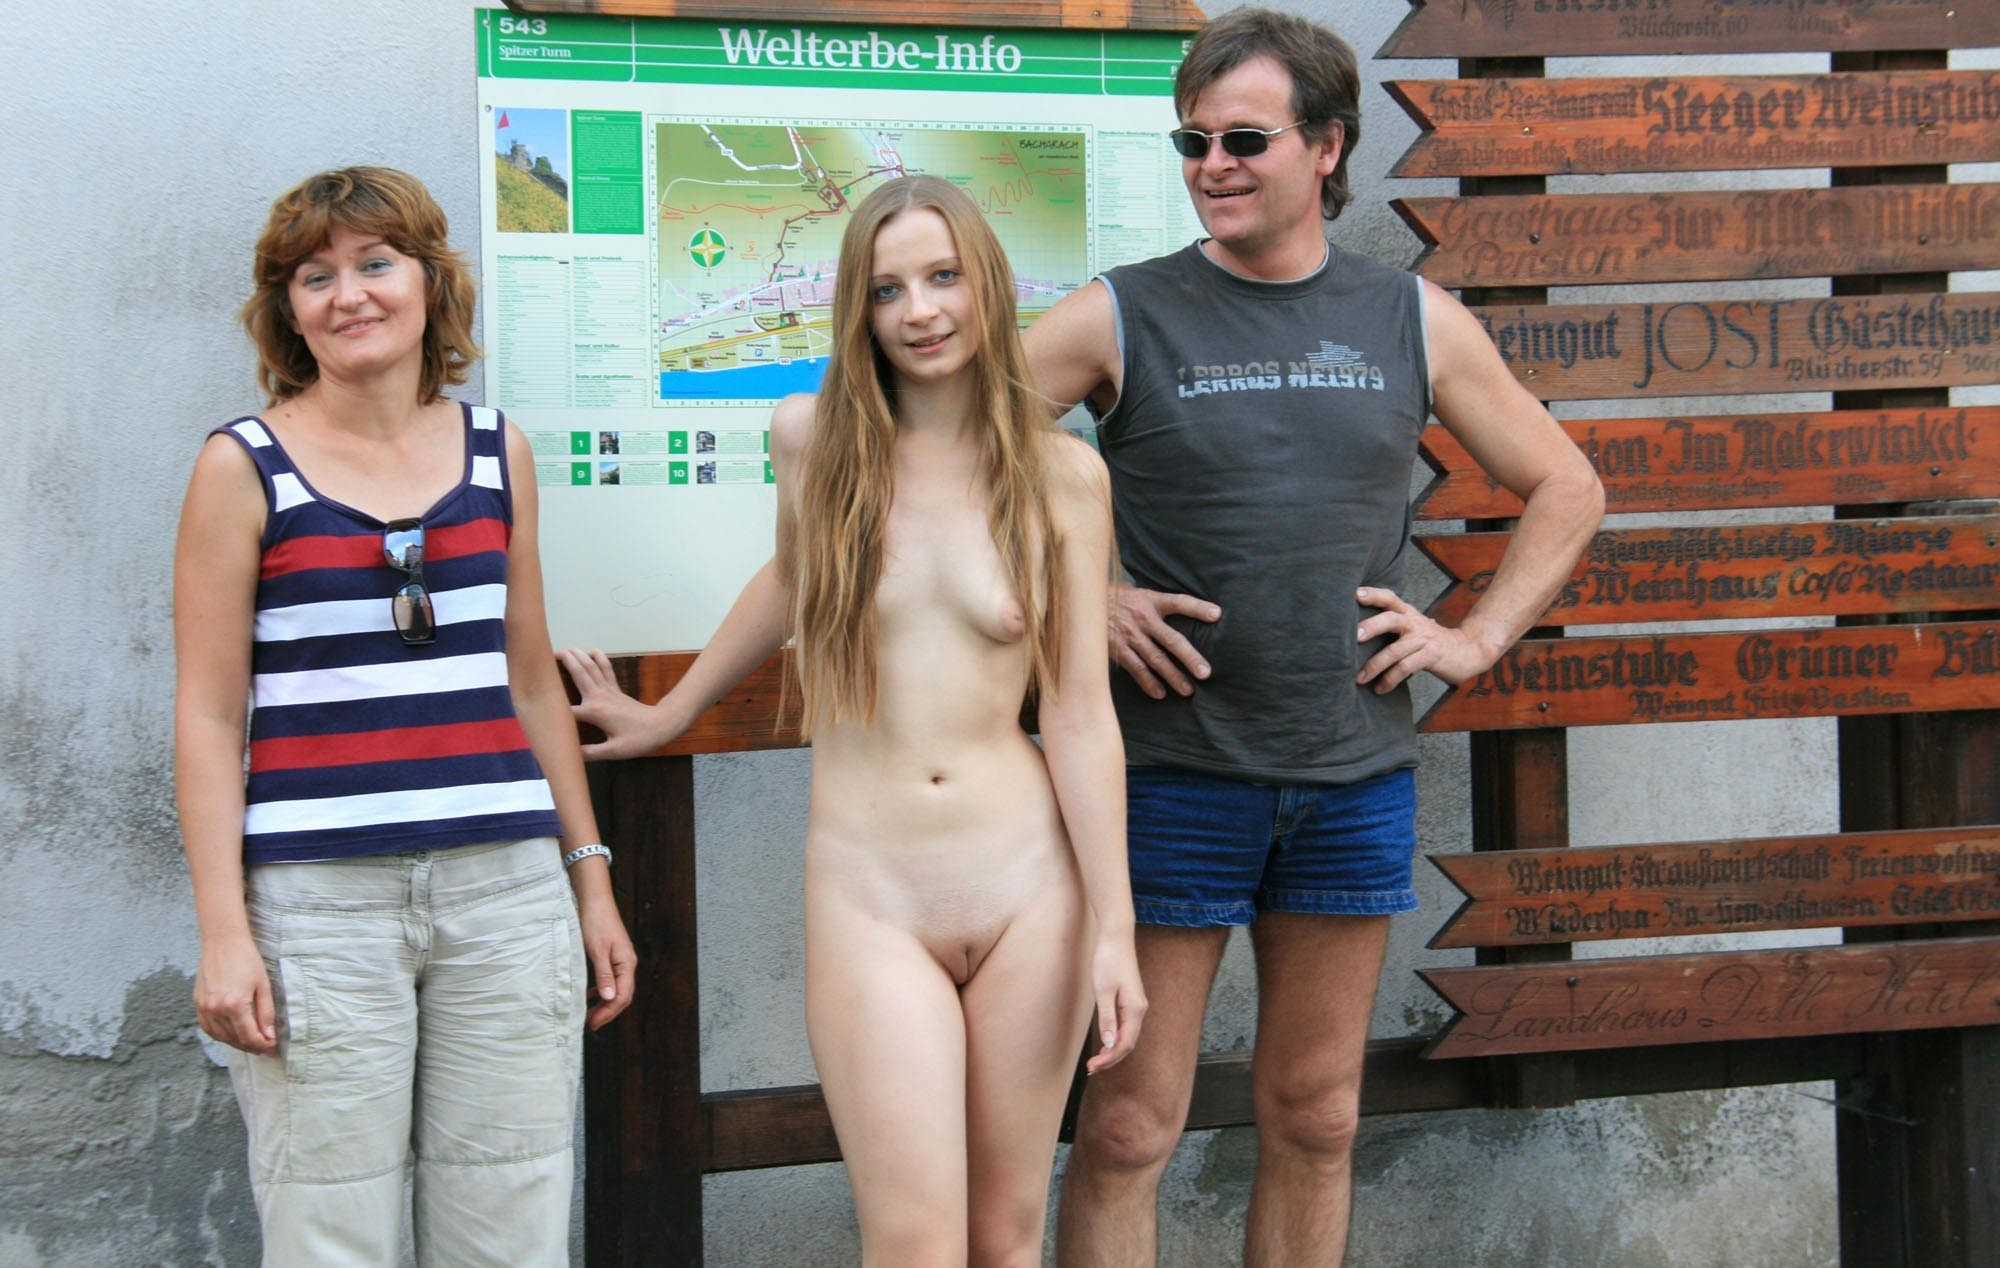 family Dauhter nude